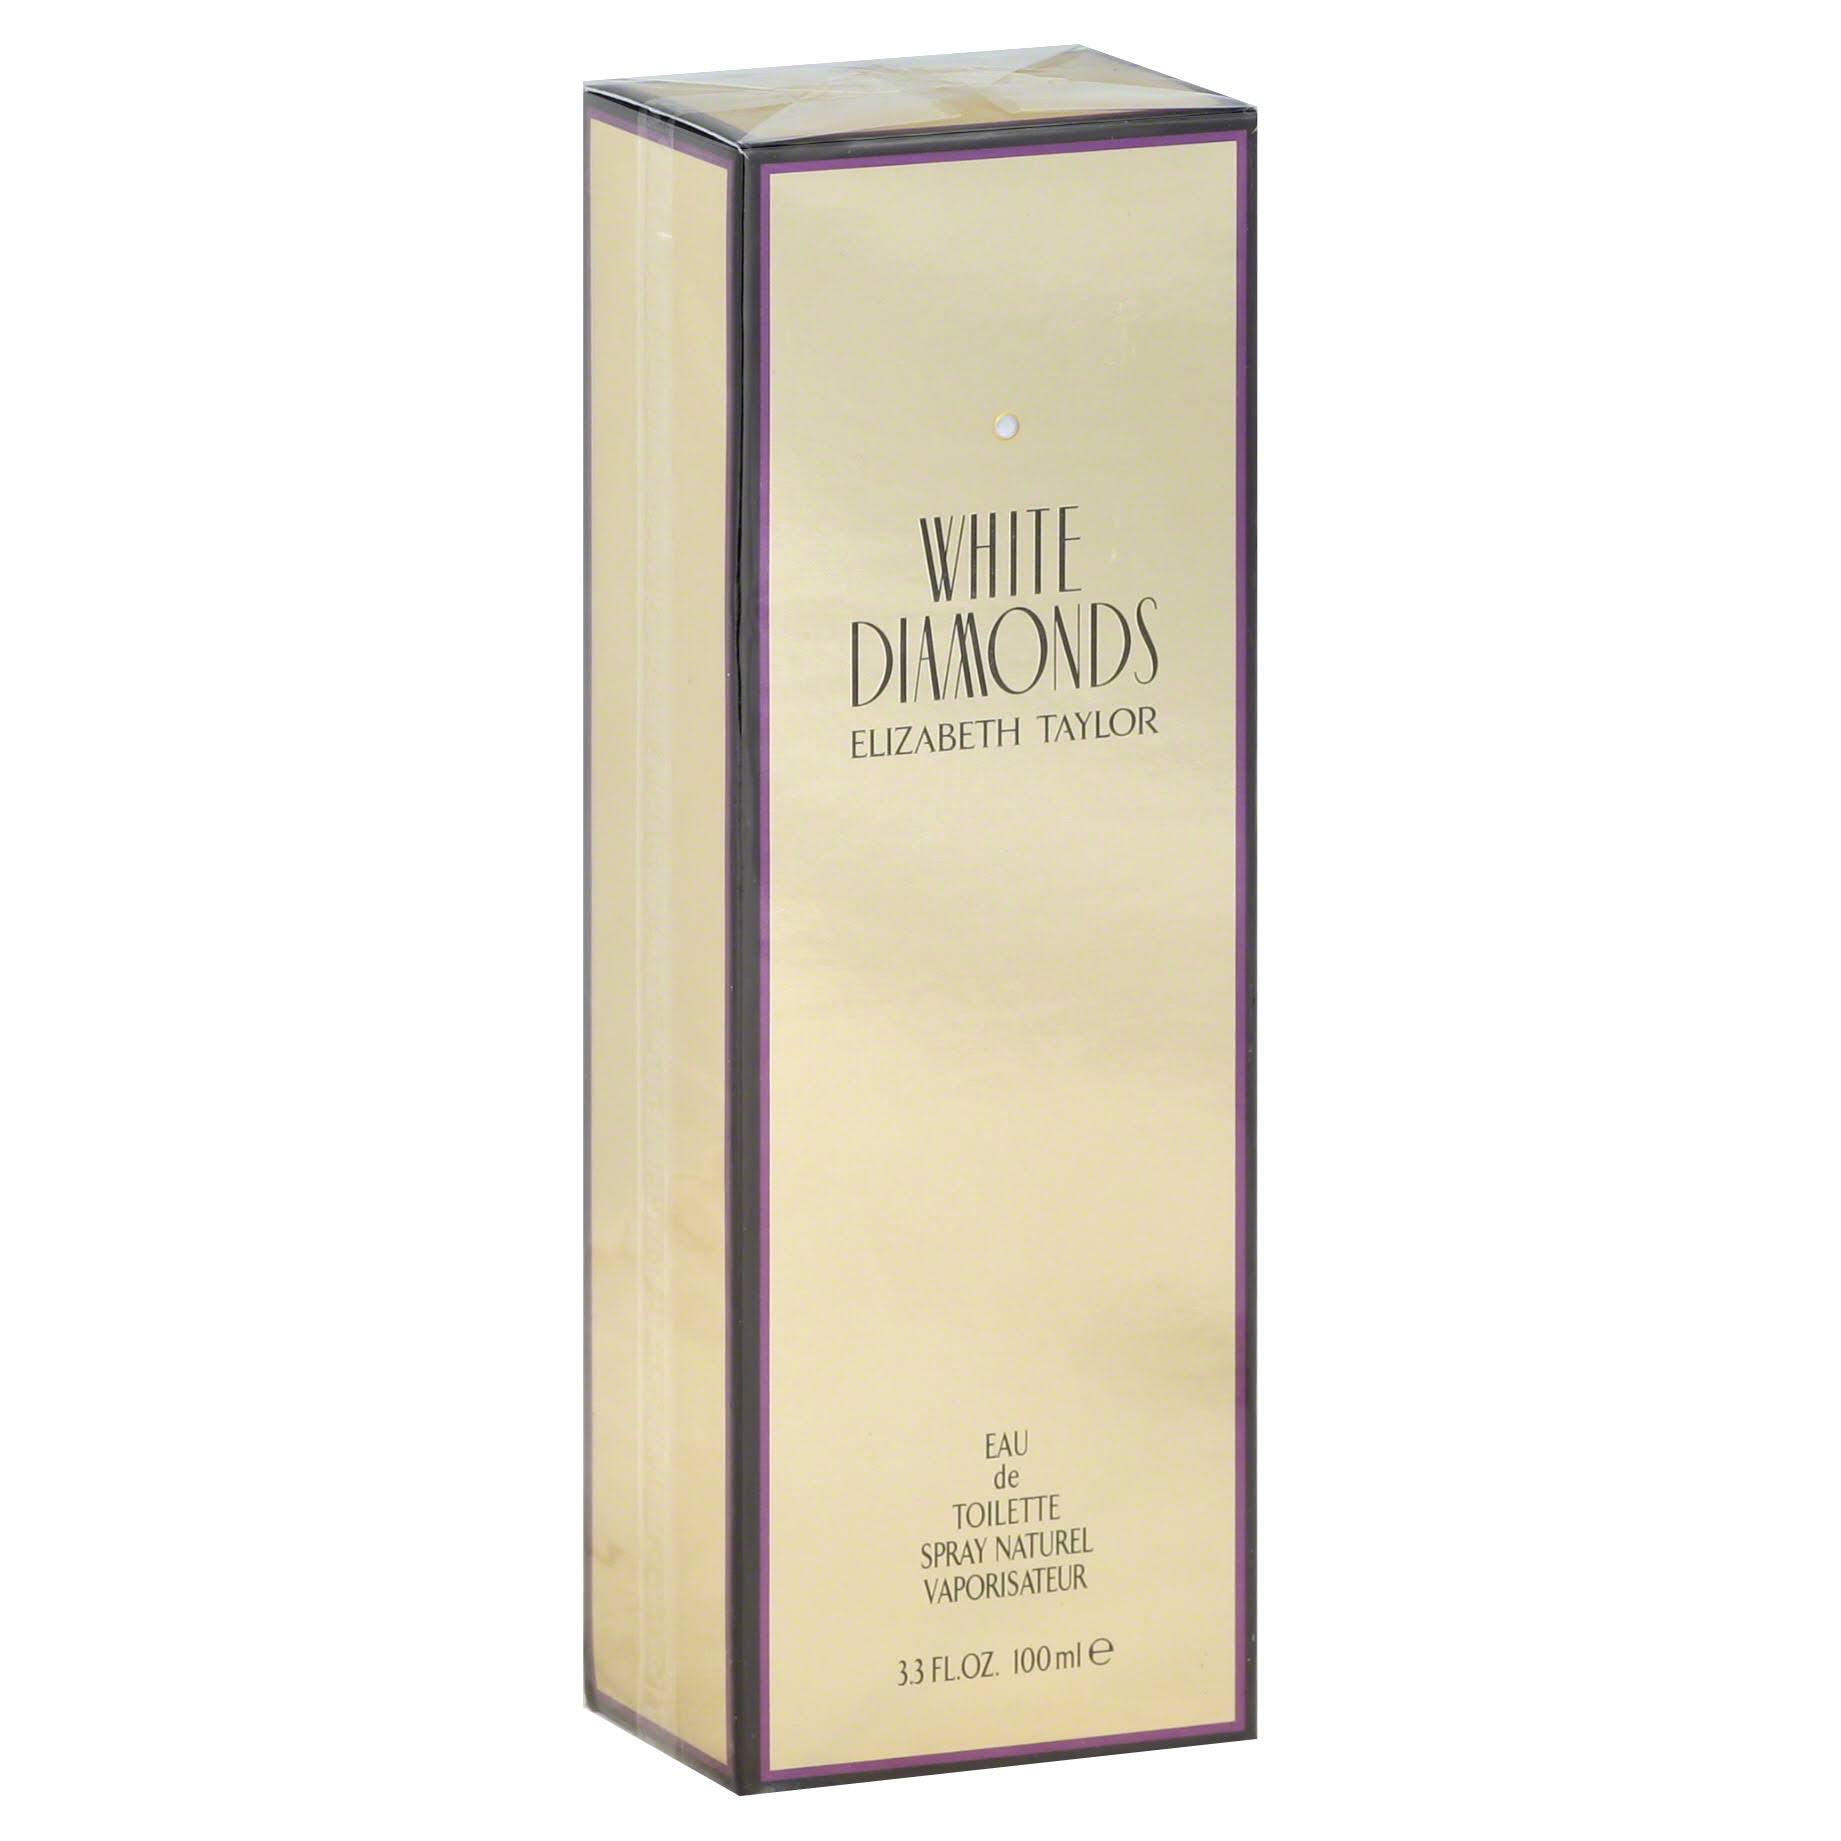 Elizabeth Taylor White Diamonds for Women Eau De Toilette Spray - 100ml